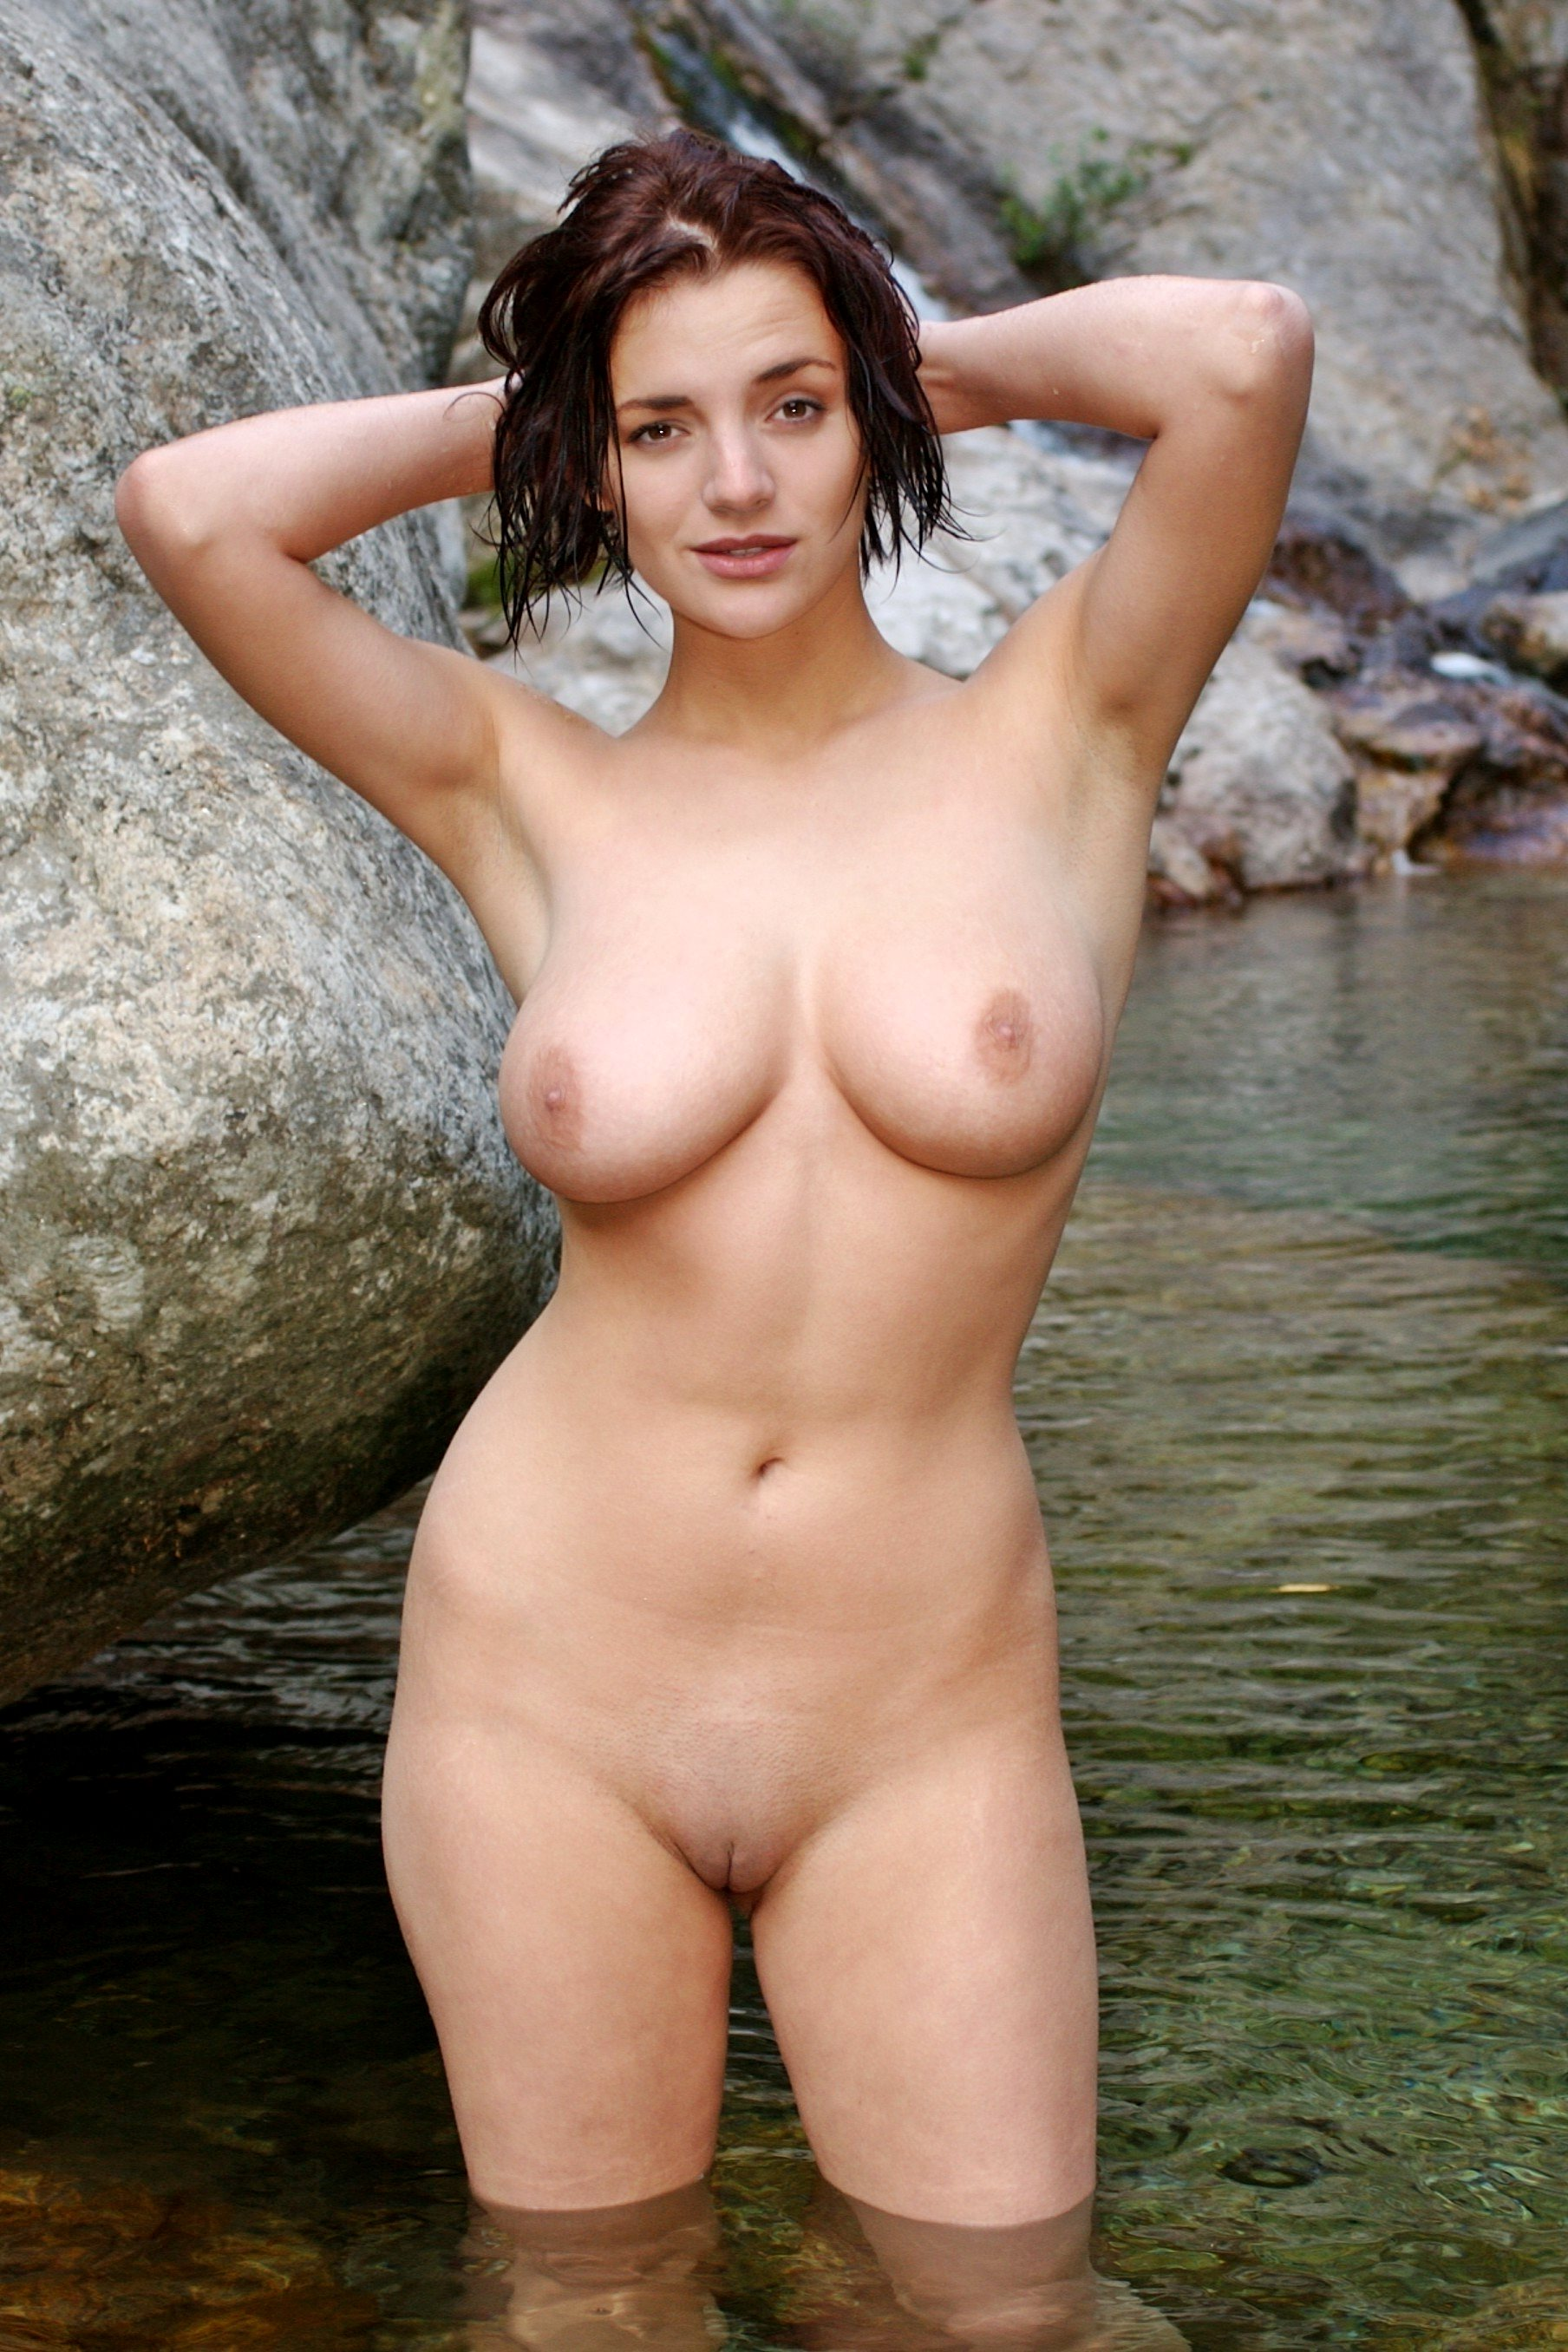 Very valuable russian amateurs mature are not